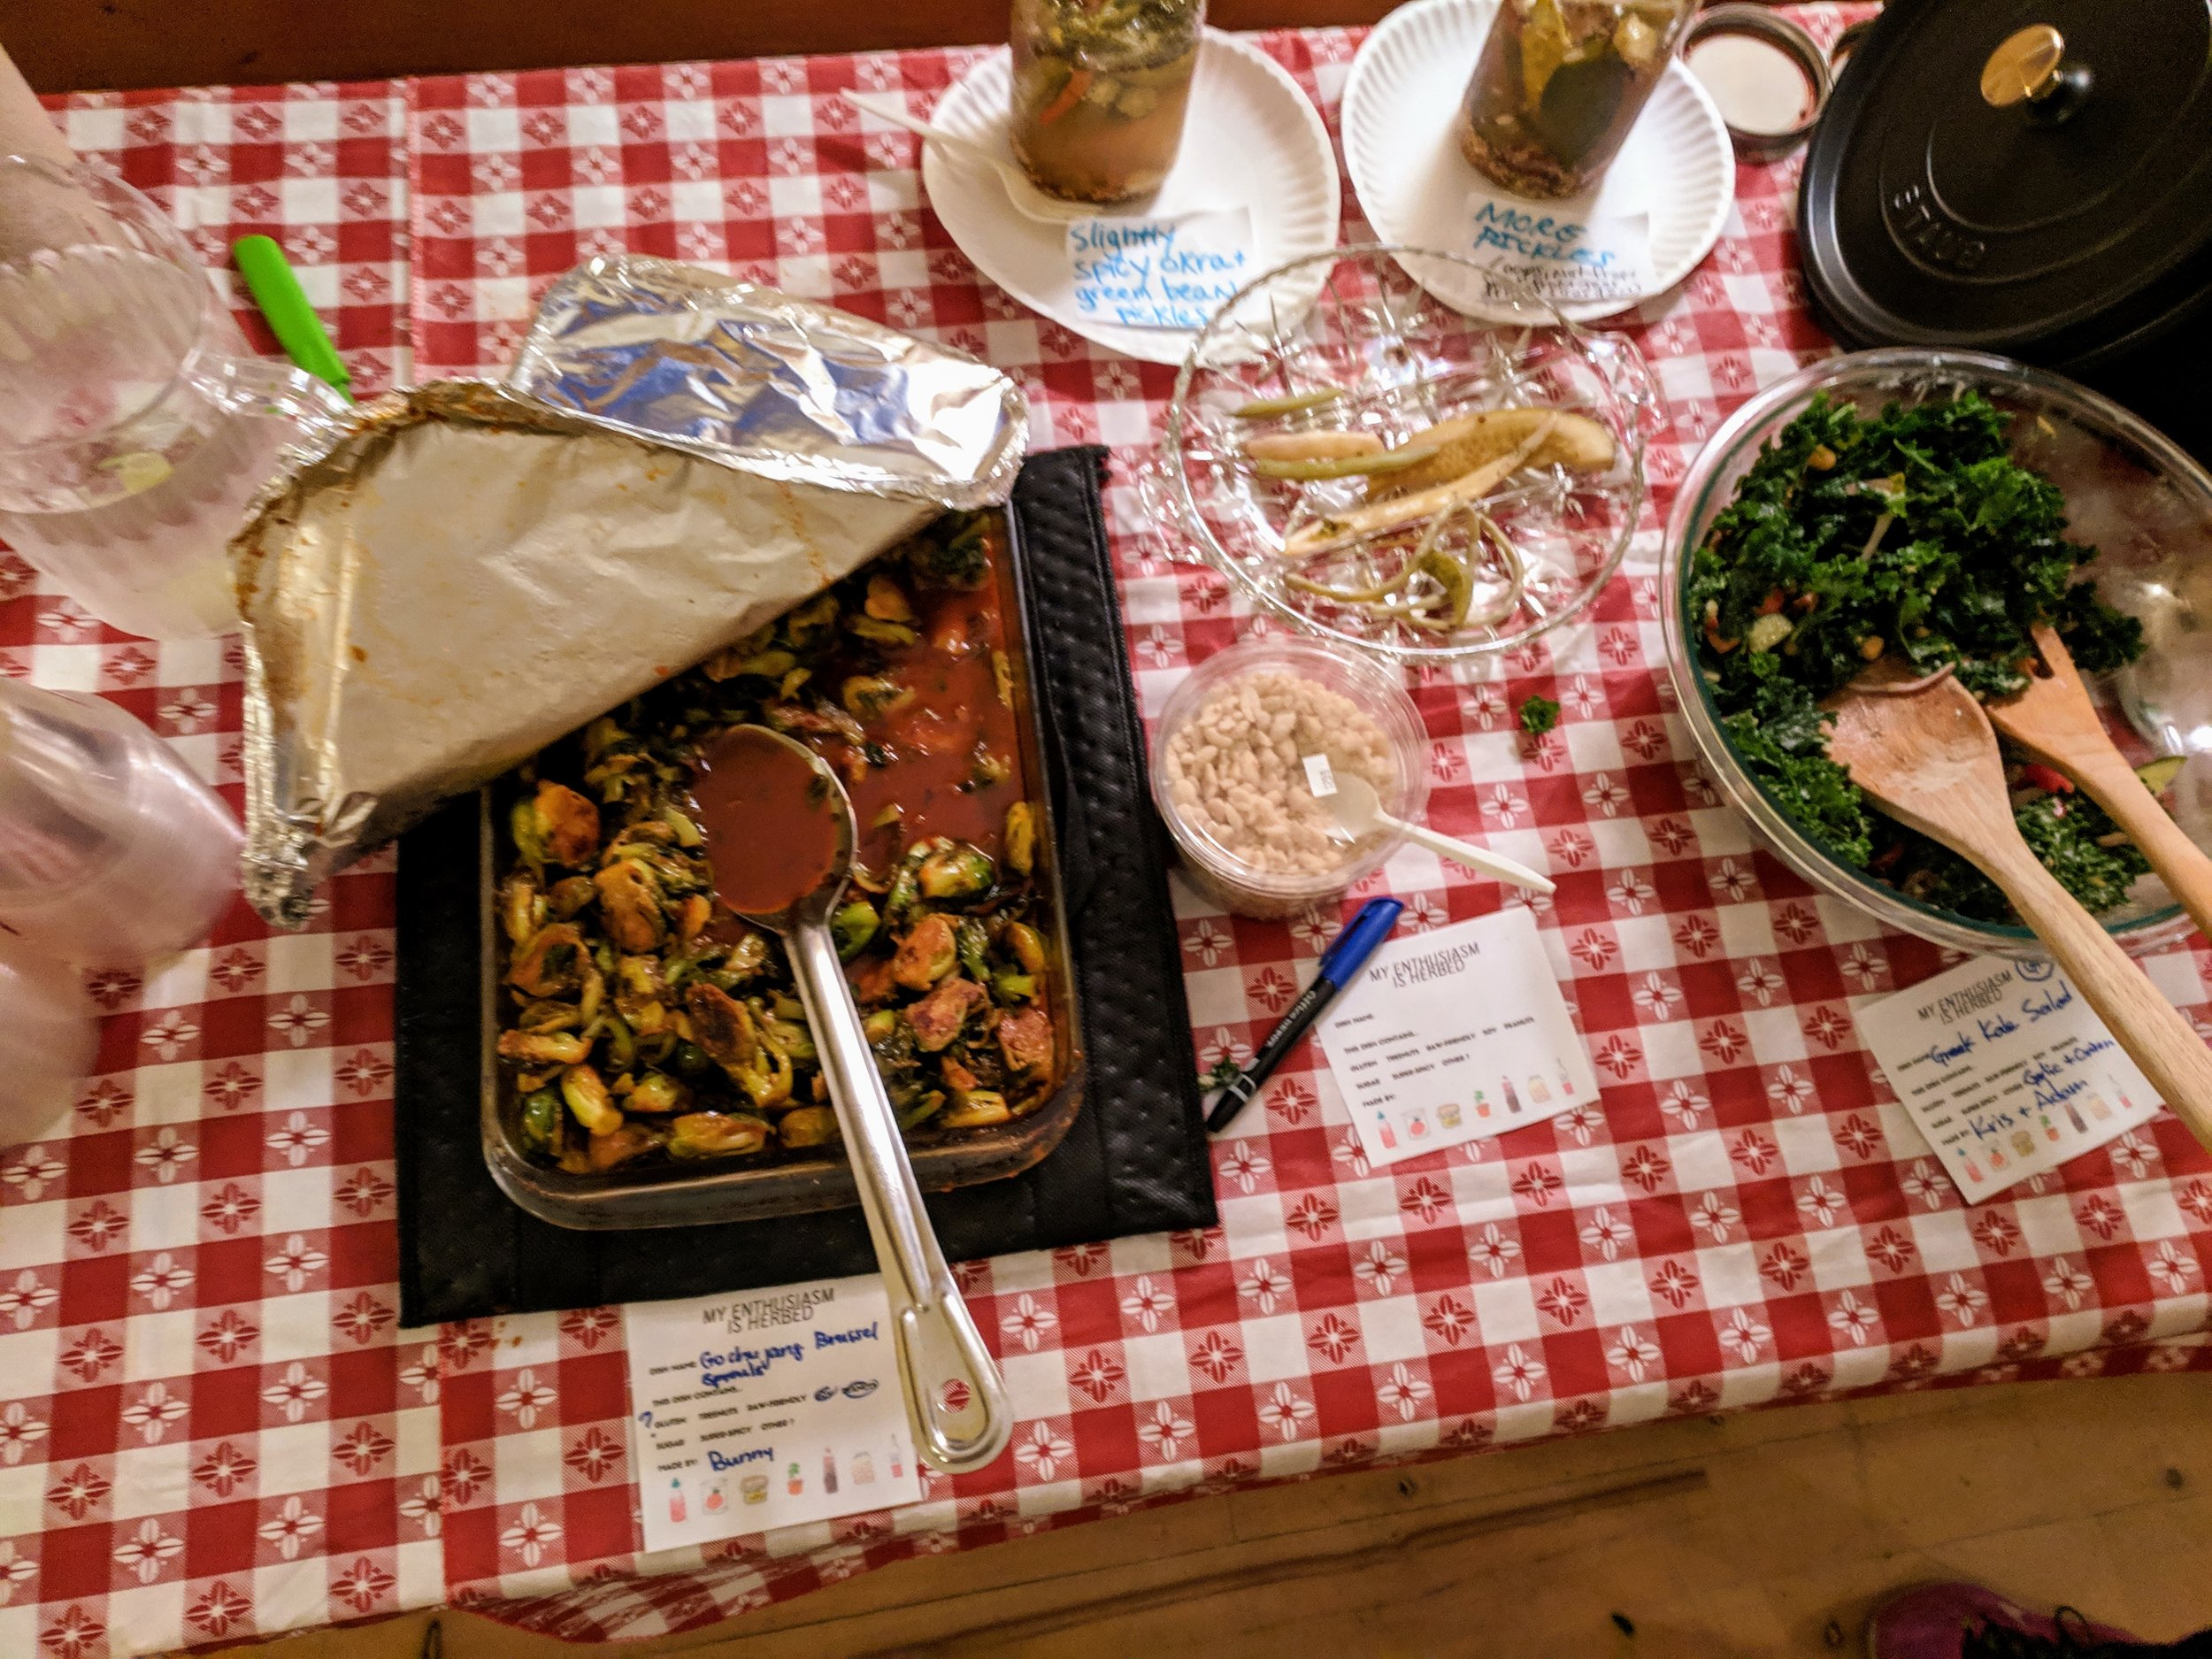 Just part of the spread that night, including bountiful kale salad, spicy brussels, excellent hummus, irresistible potatoes, bonus pickles, and so much more.